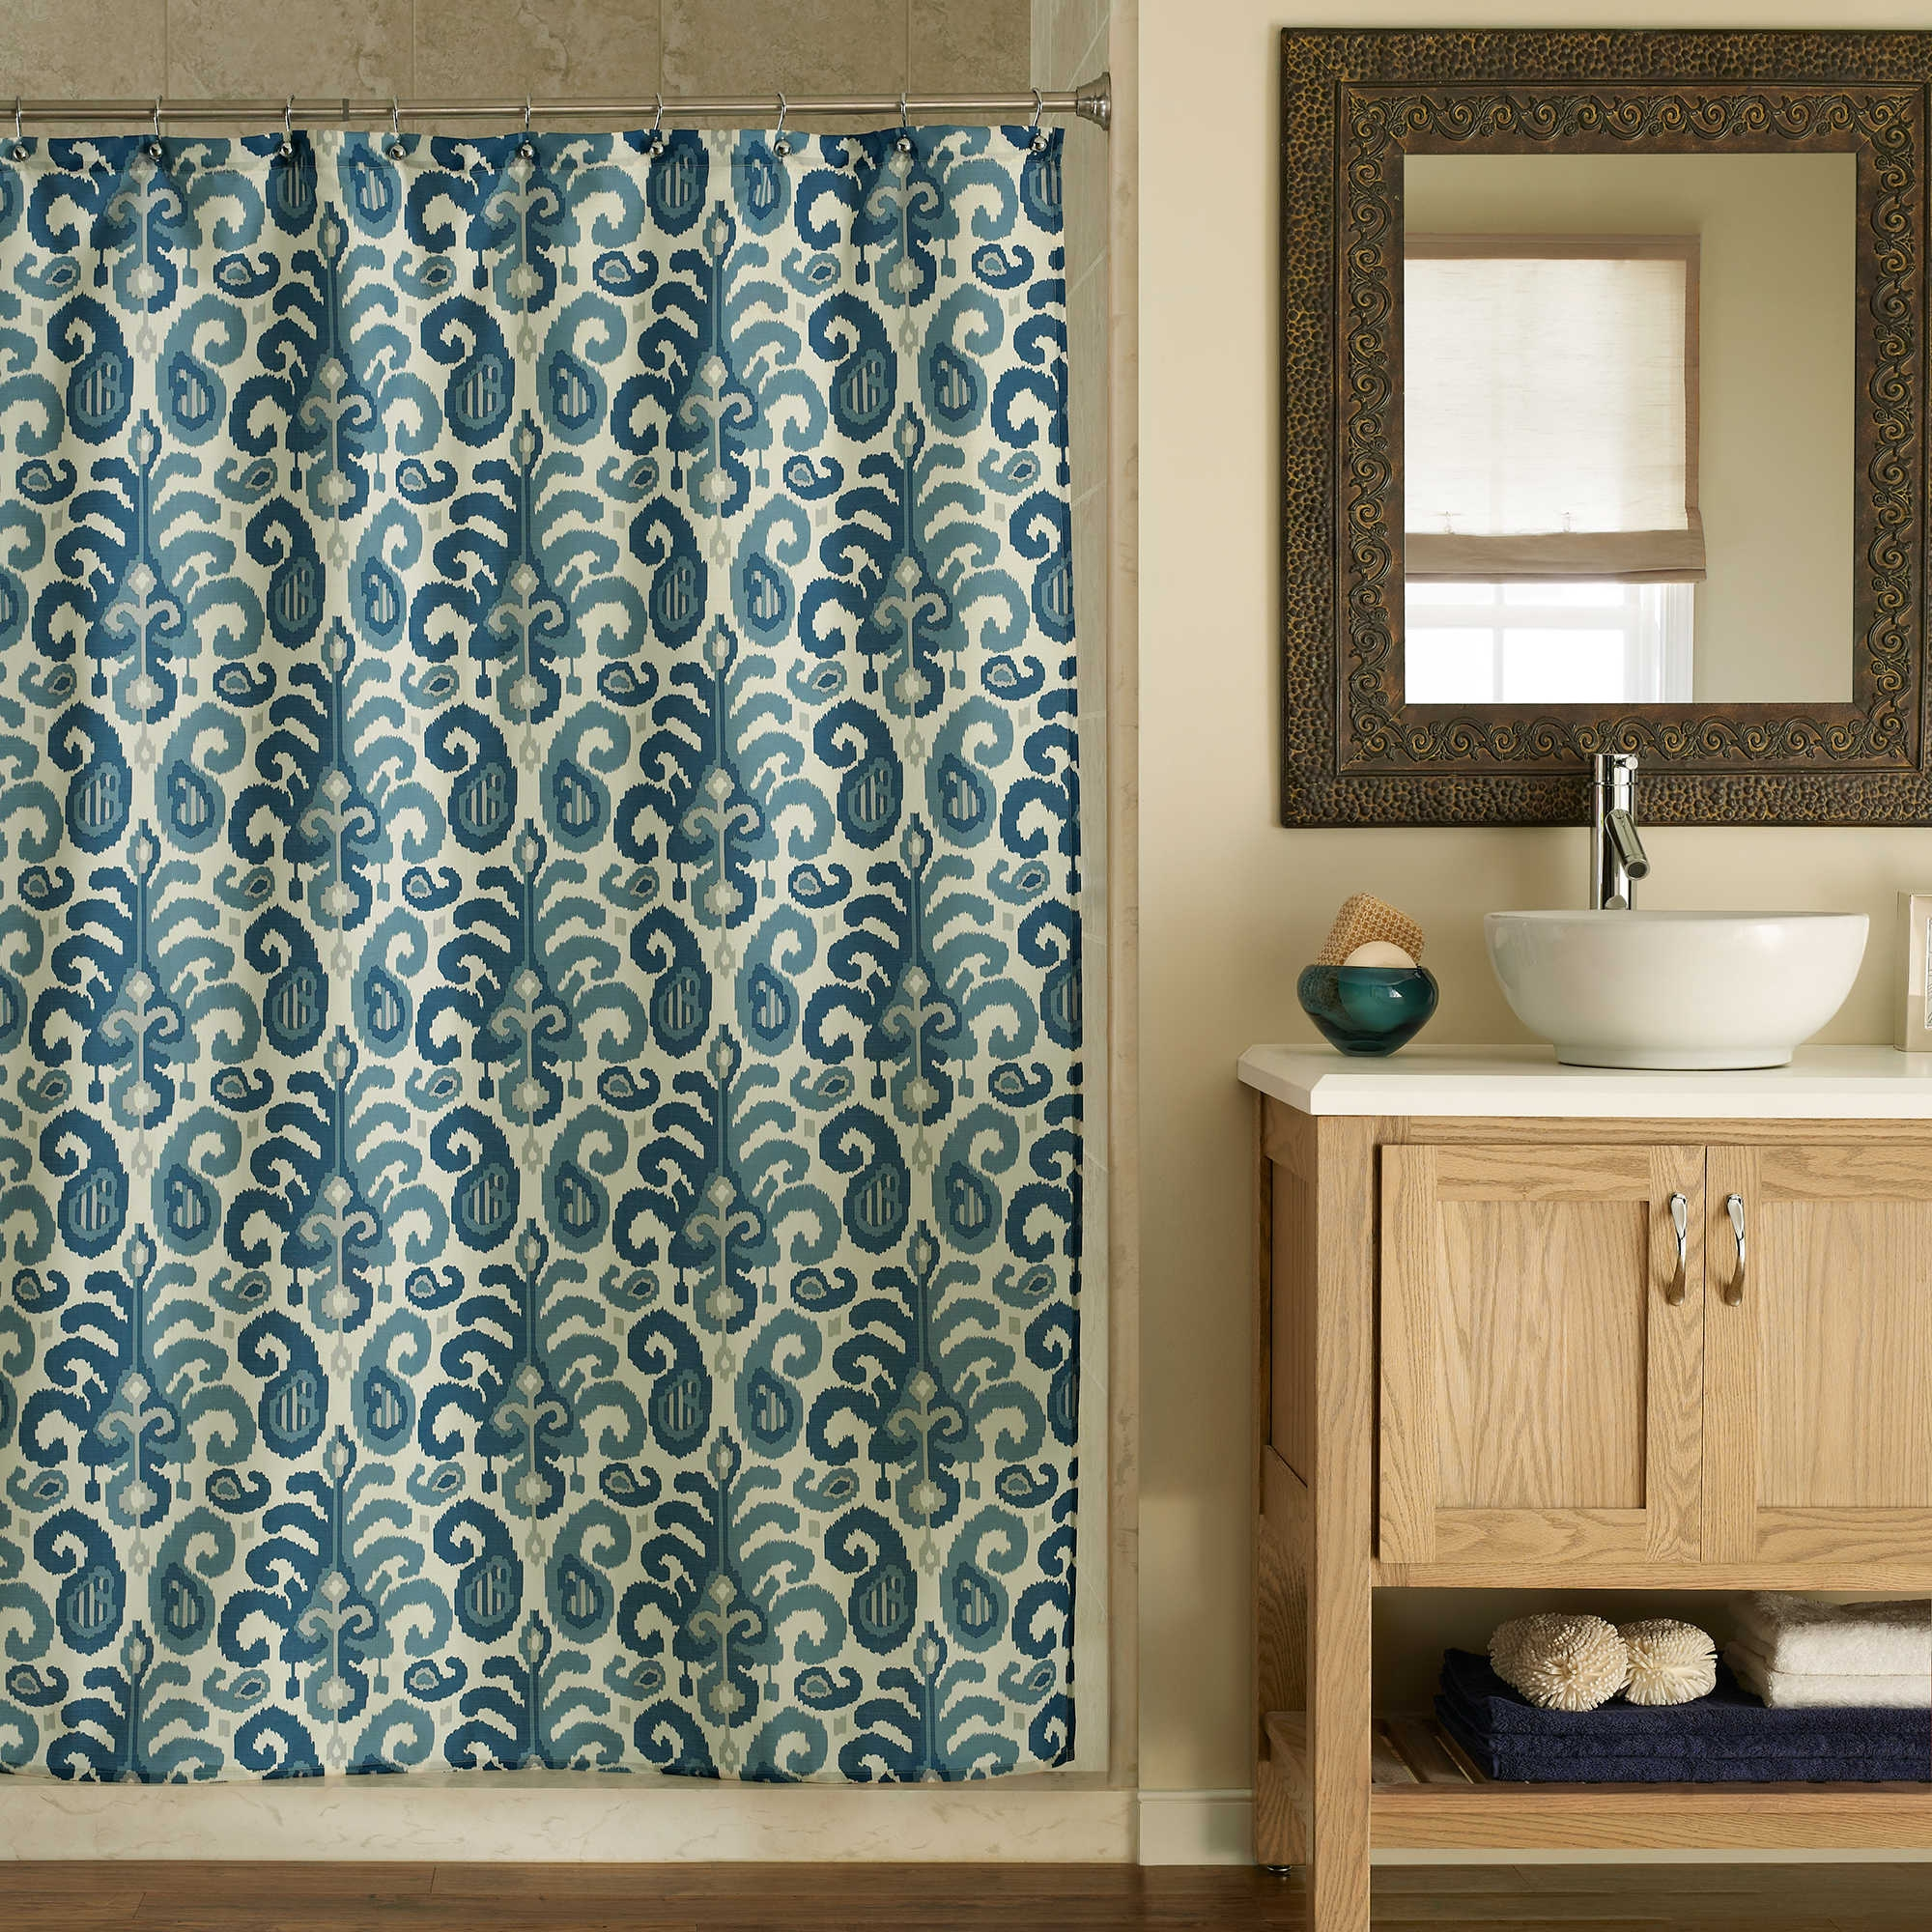 Northwoods Woodland Shower Curtain Shower Curtain within size 2000 X 2000